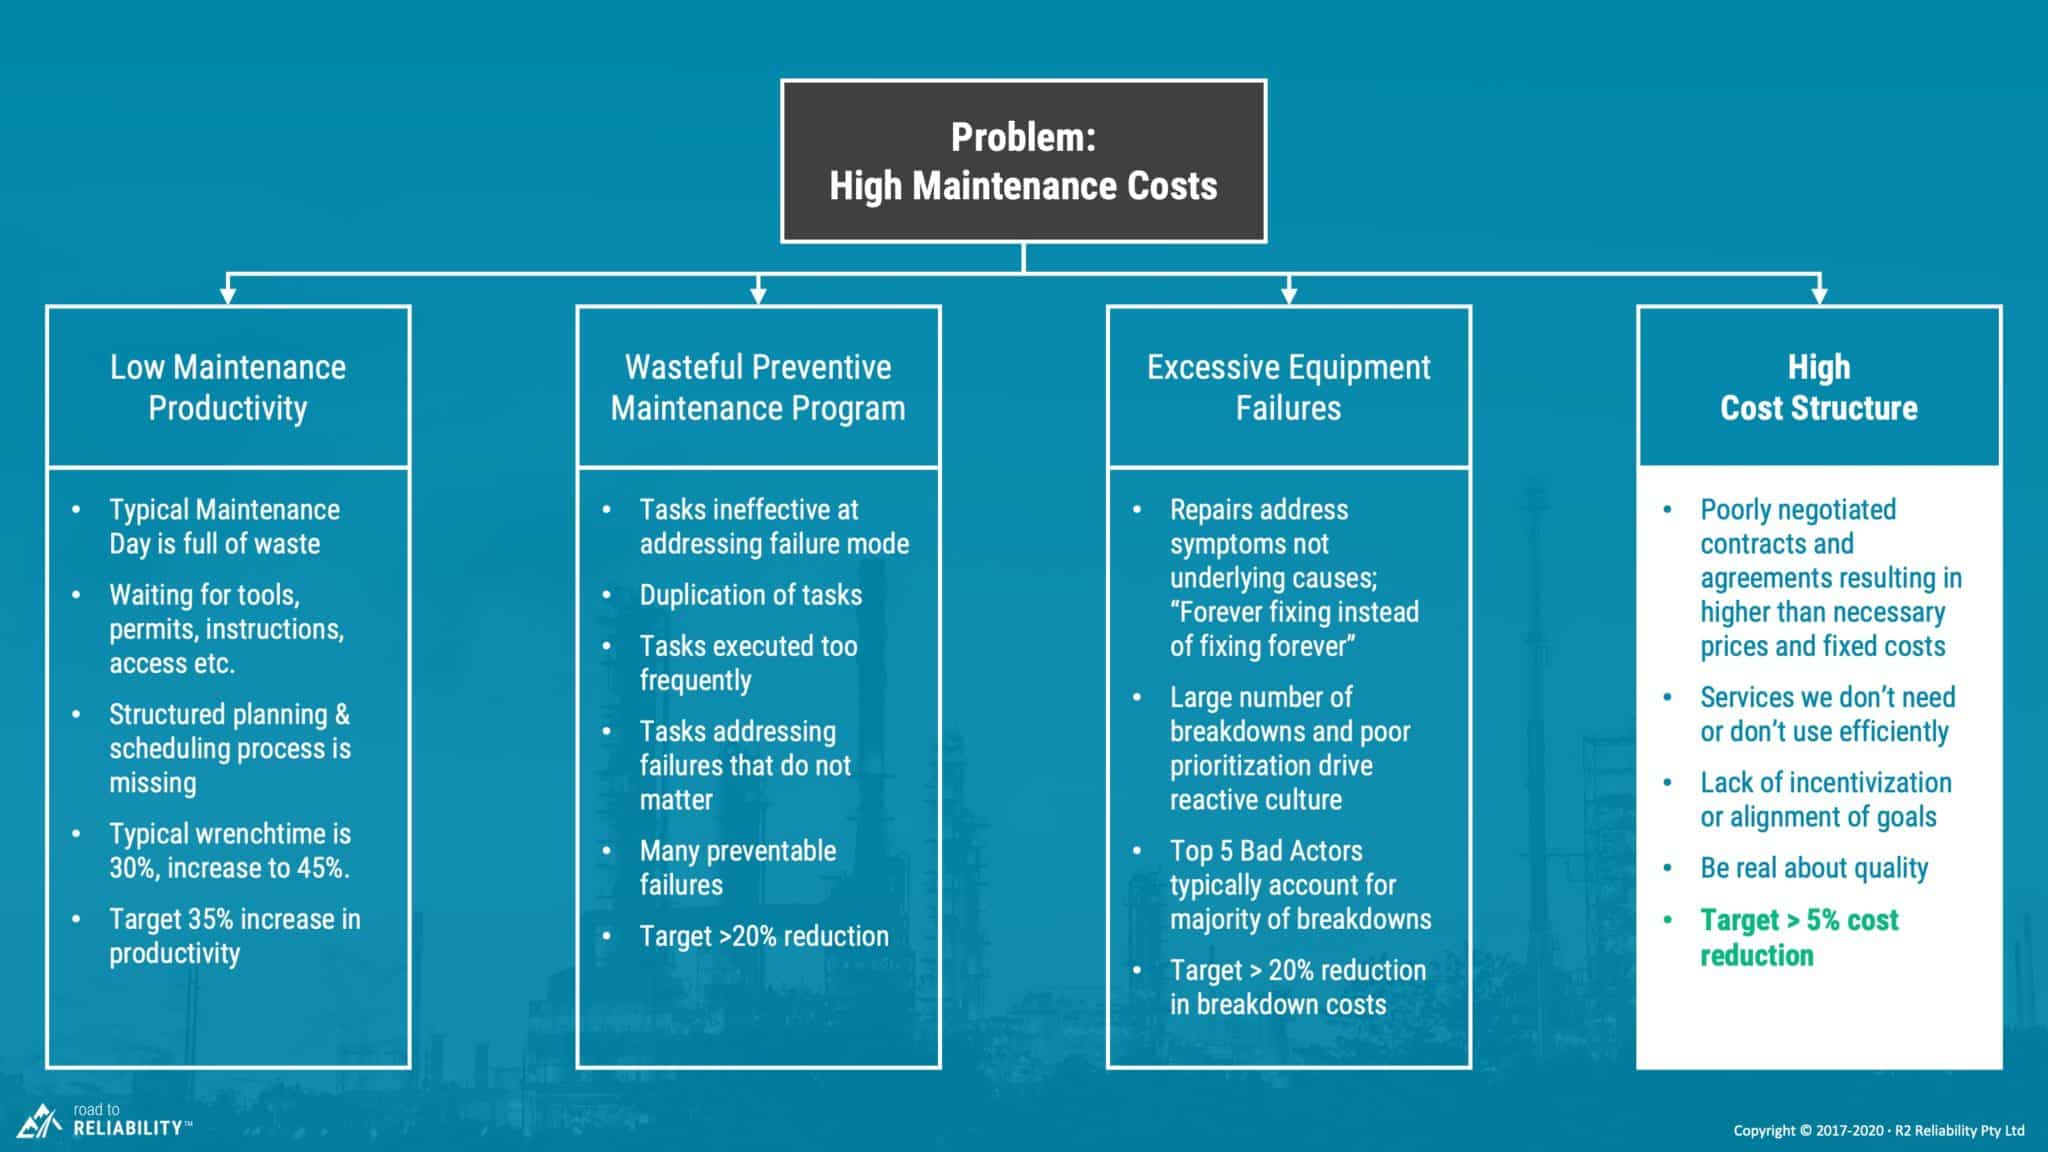 high maintenance costs due to high cost structure